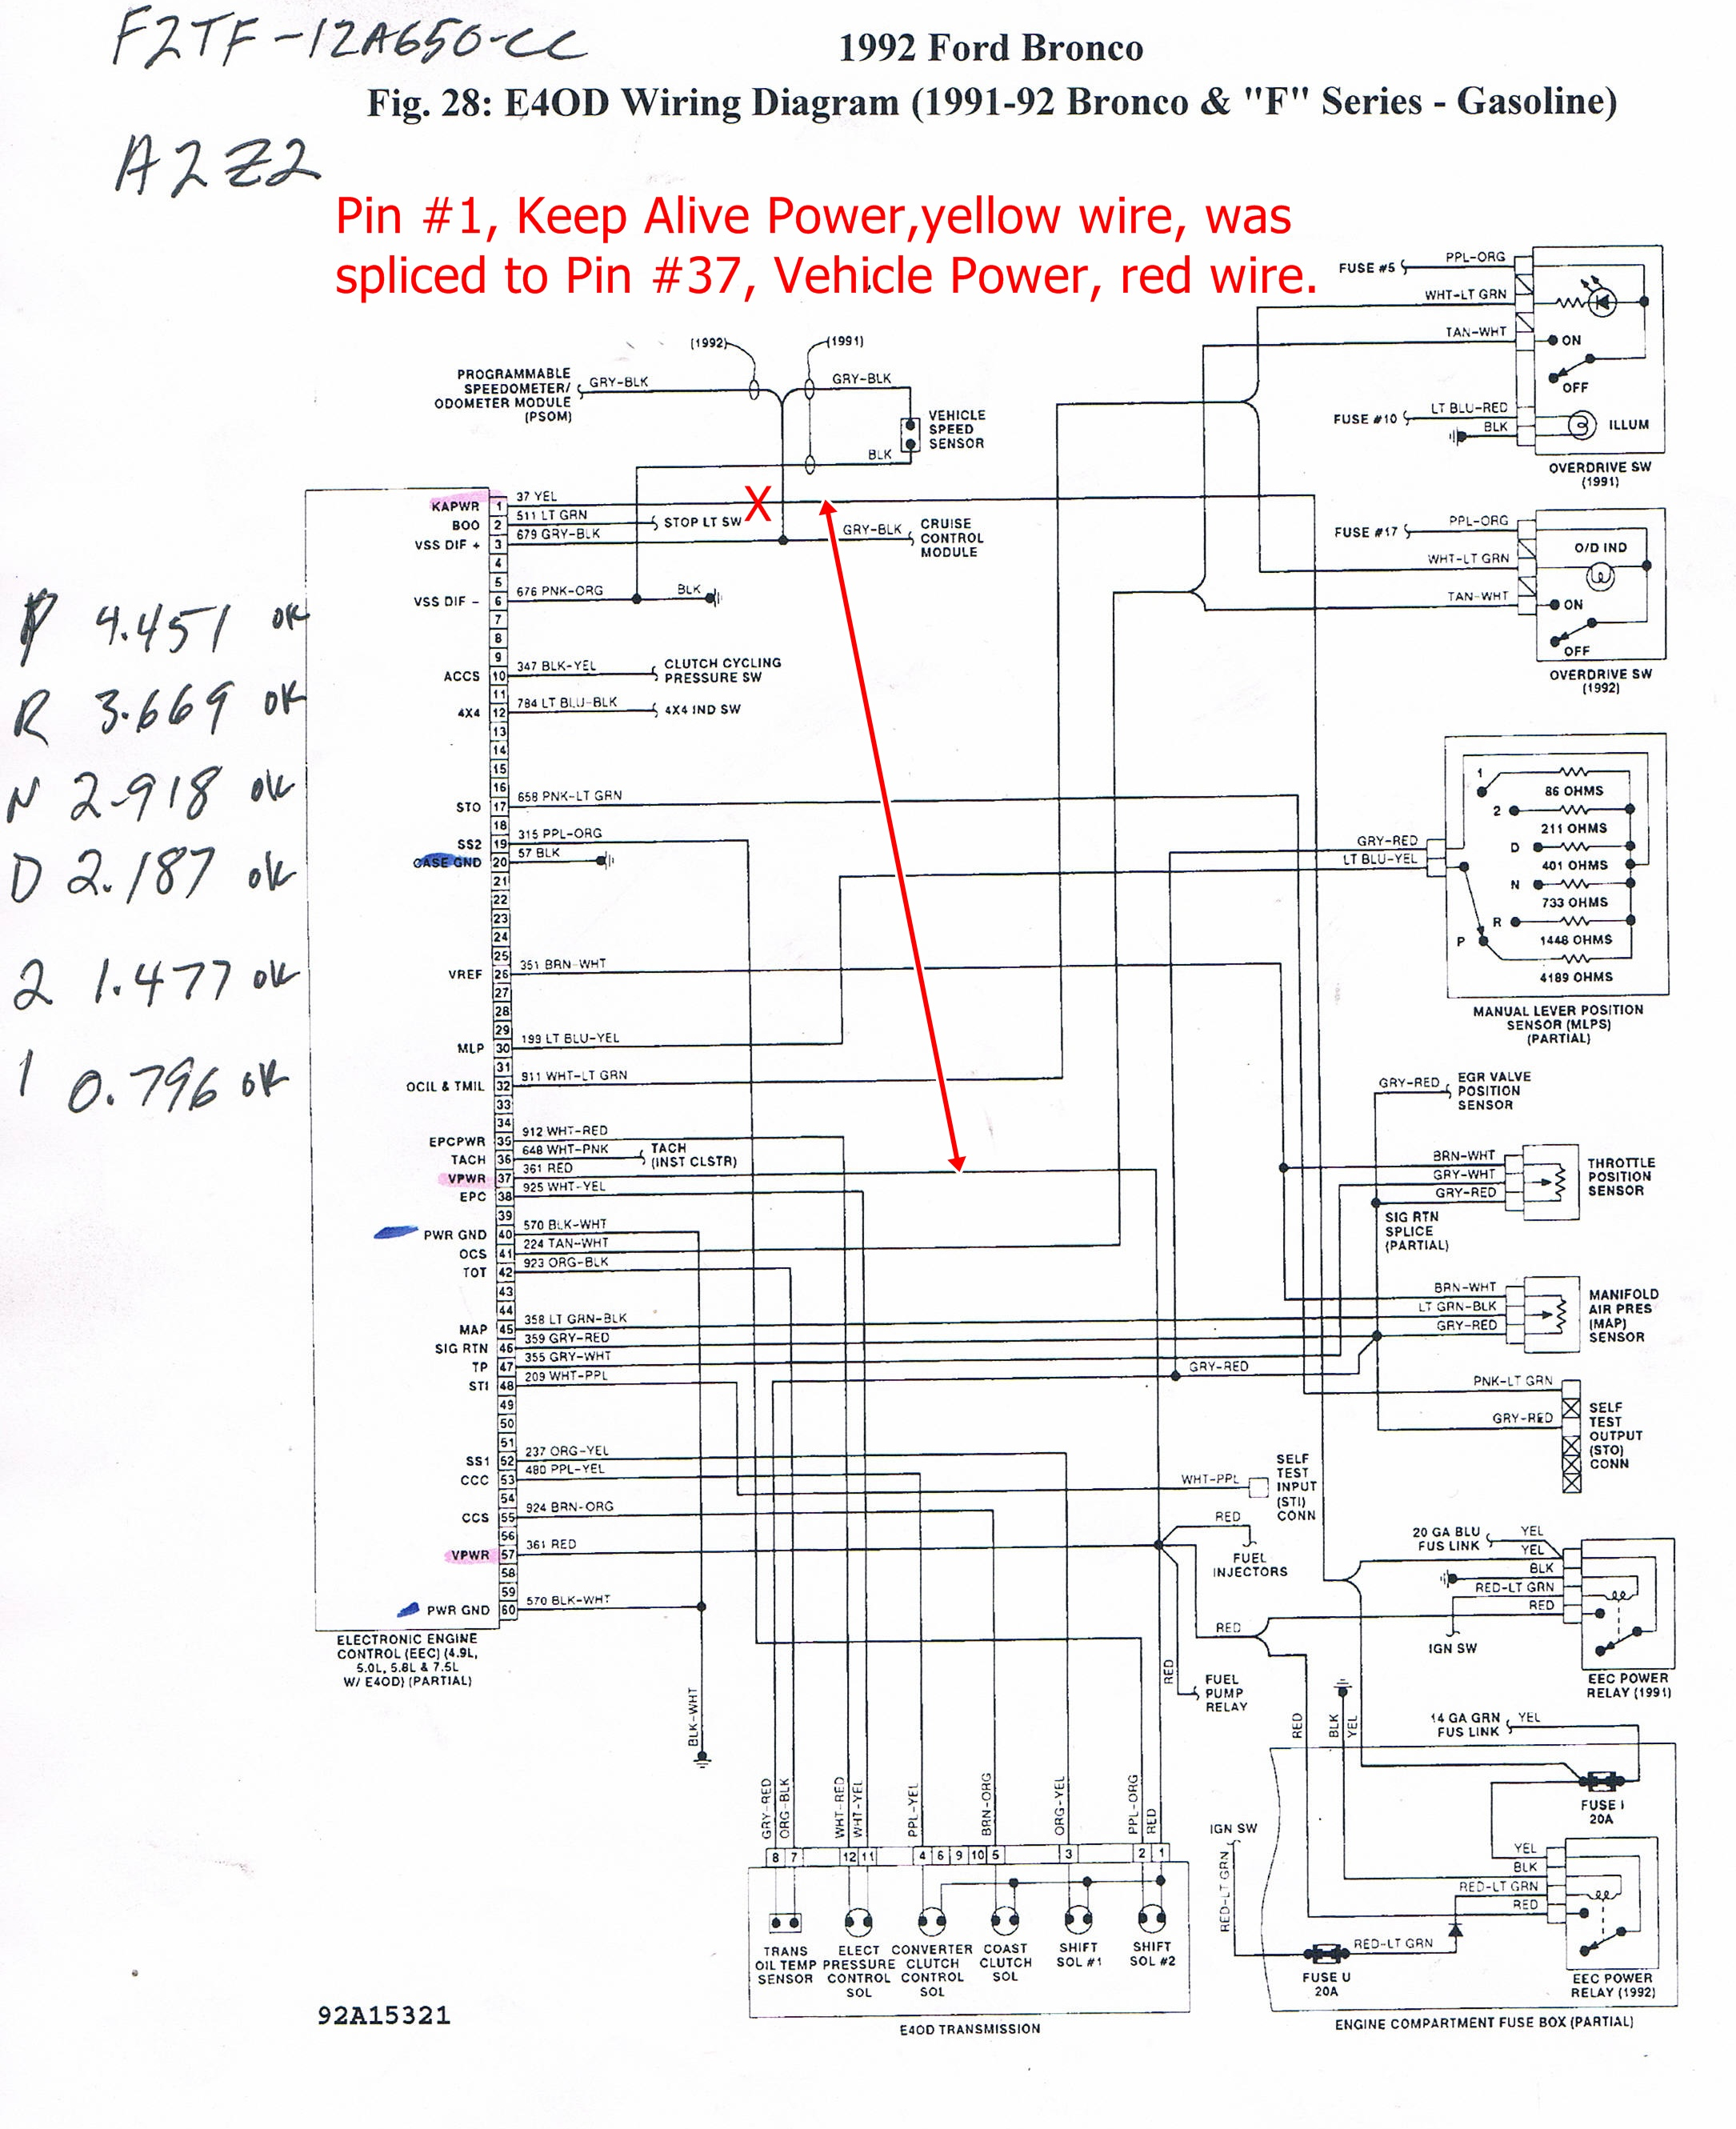 saab 9 3 headlight wiring diagram best wiring library rh 172 princestaash org